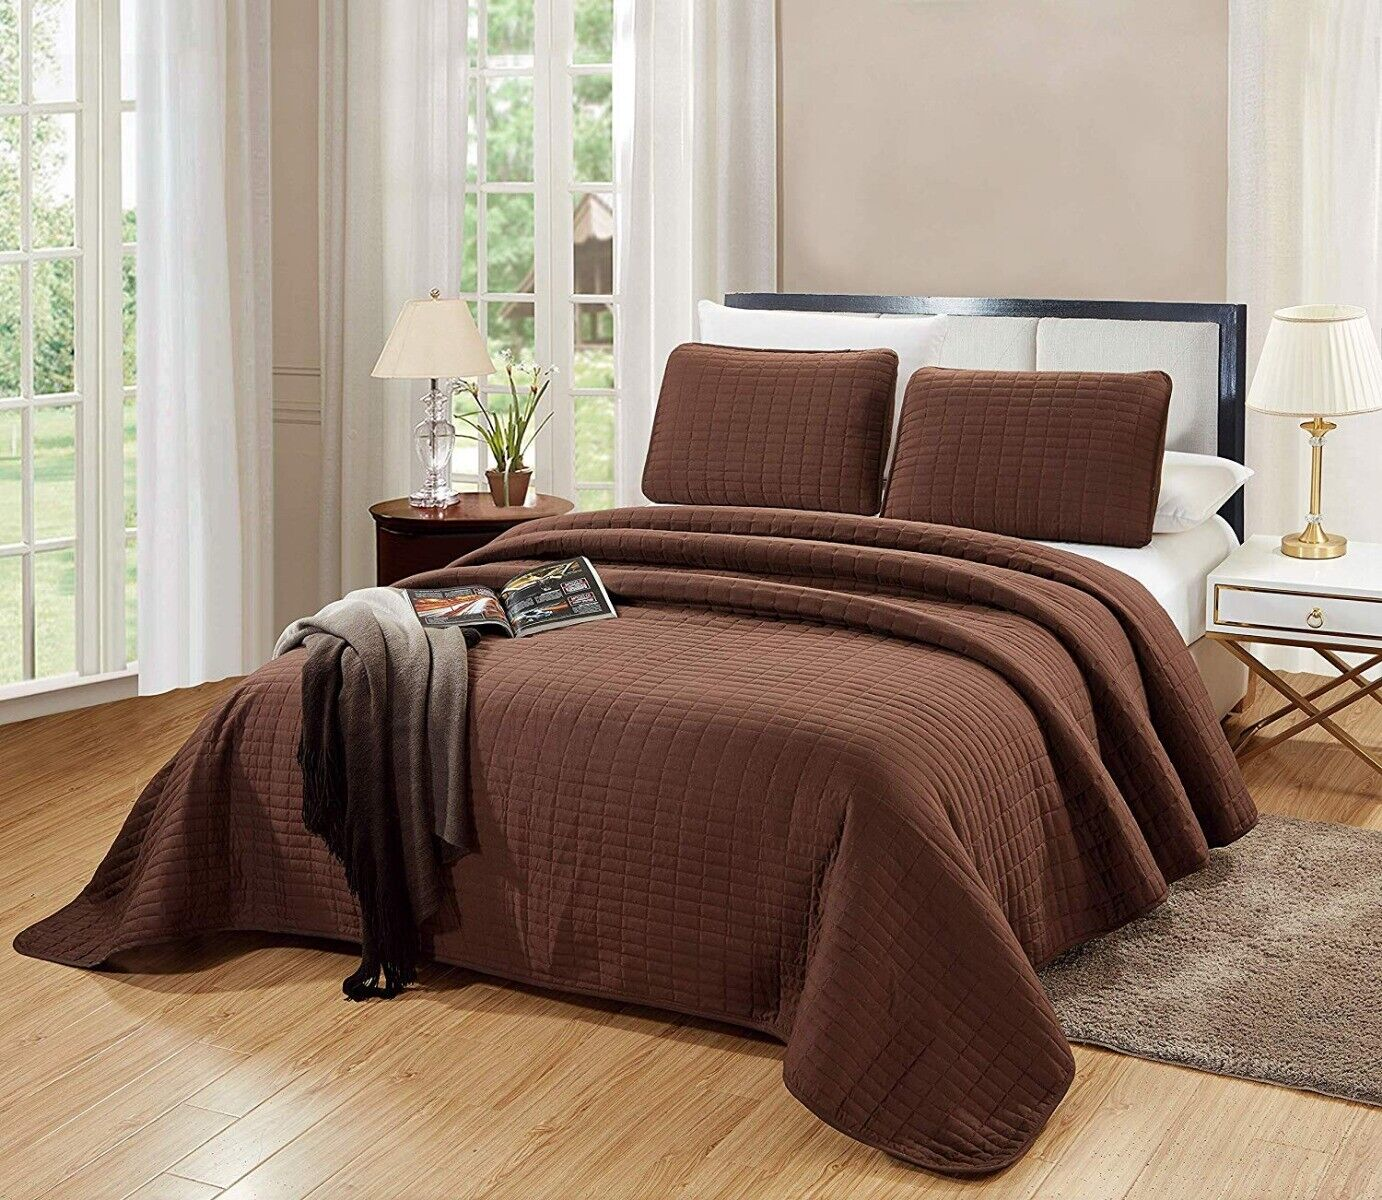 QUEEN/ FULL Size Catena Quilt Set Chocolate Brown Microfiber